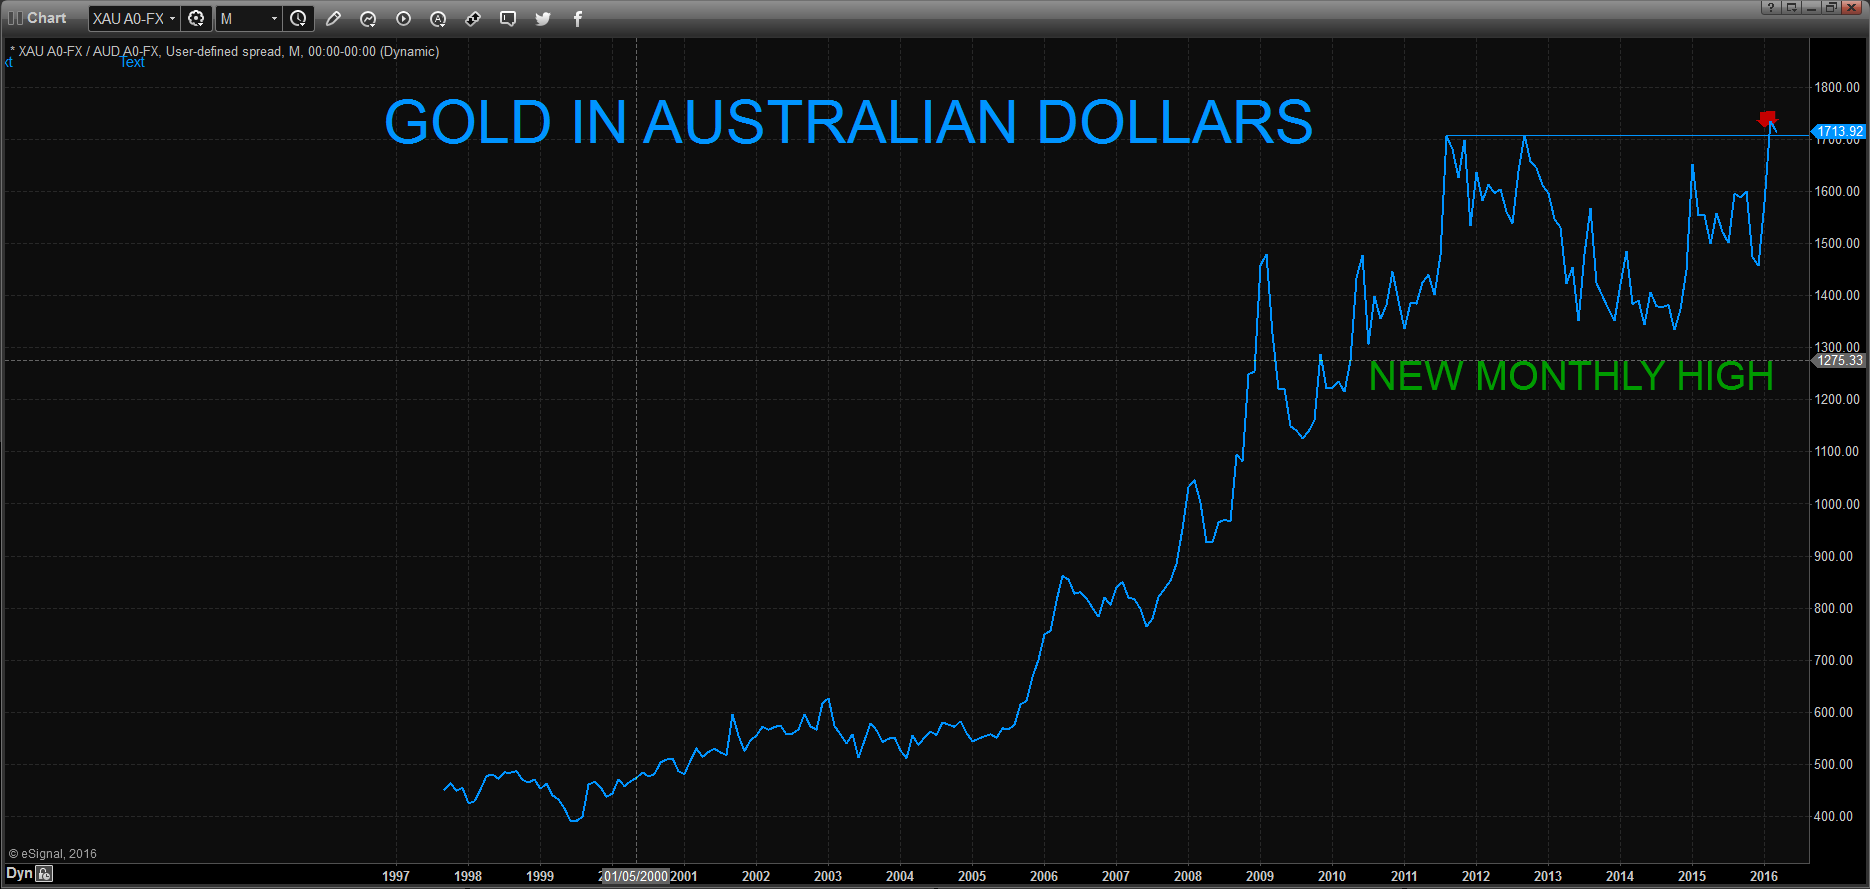 Gold in Australian Dollars